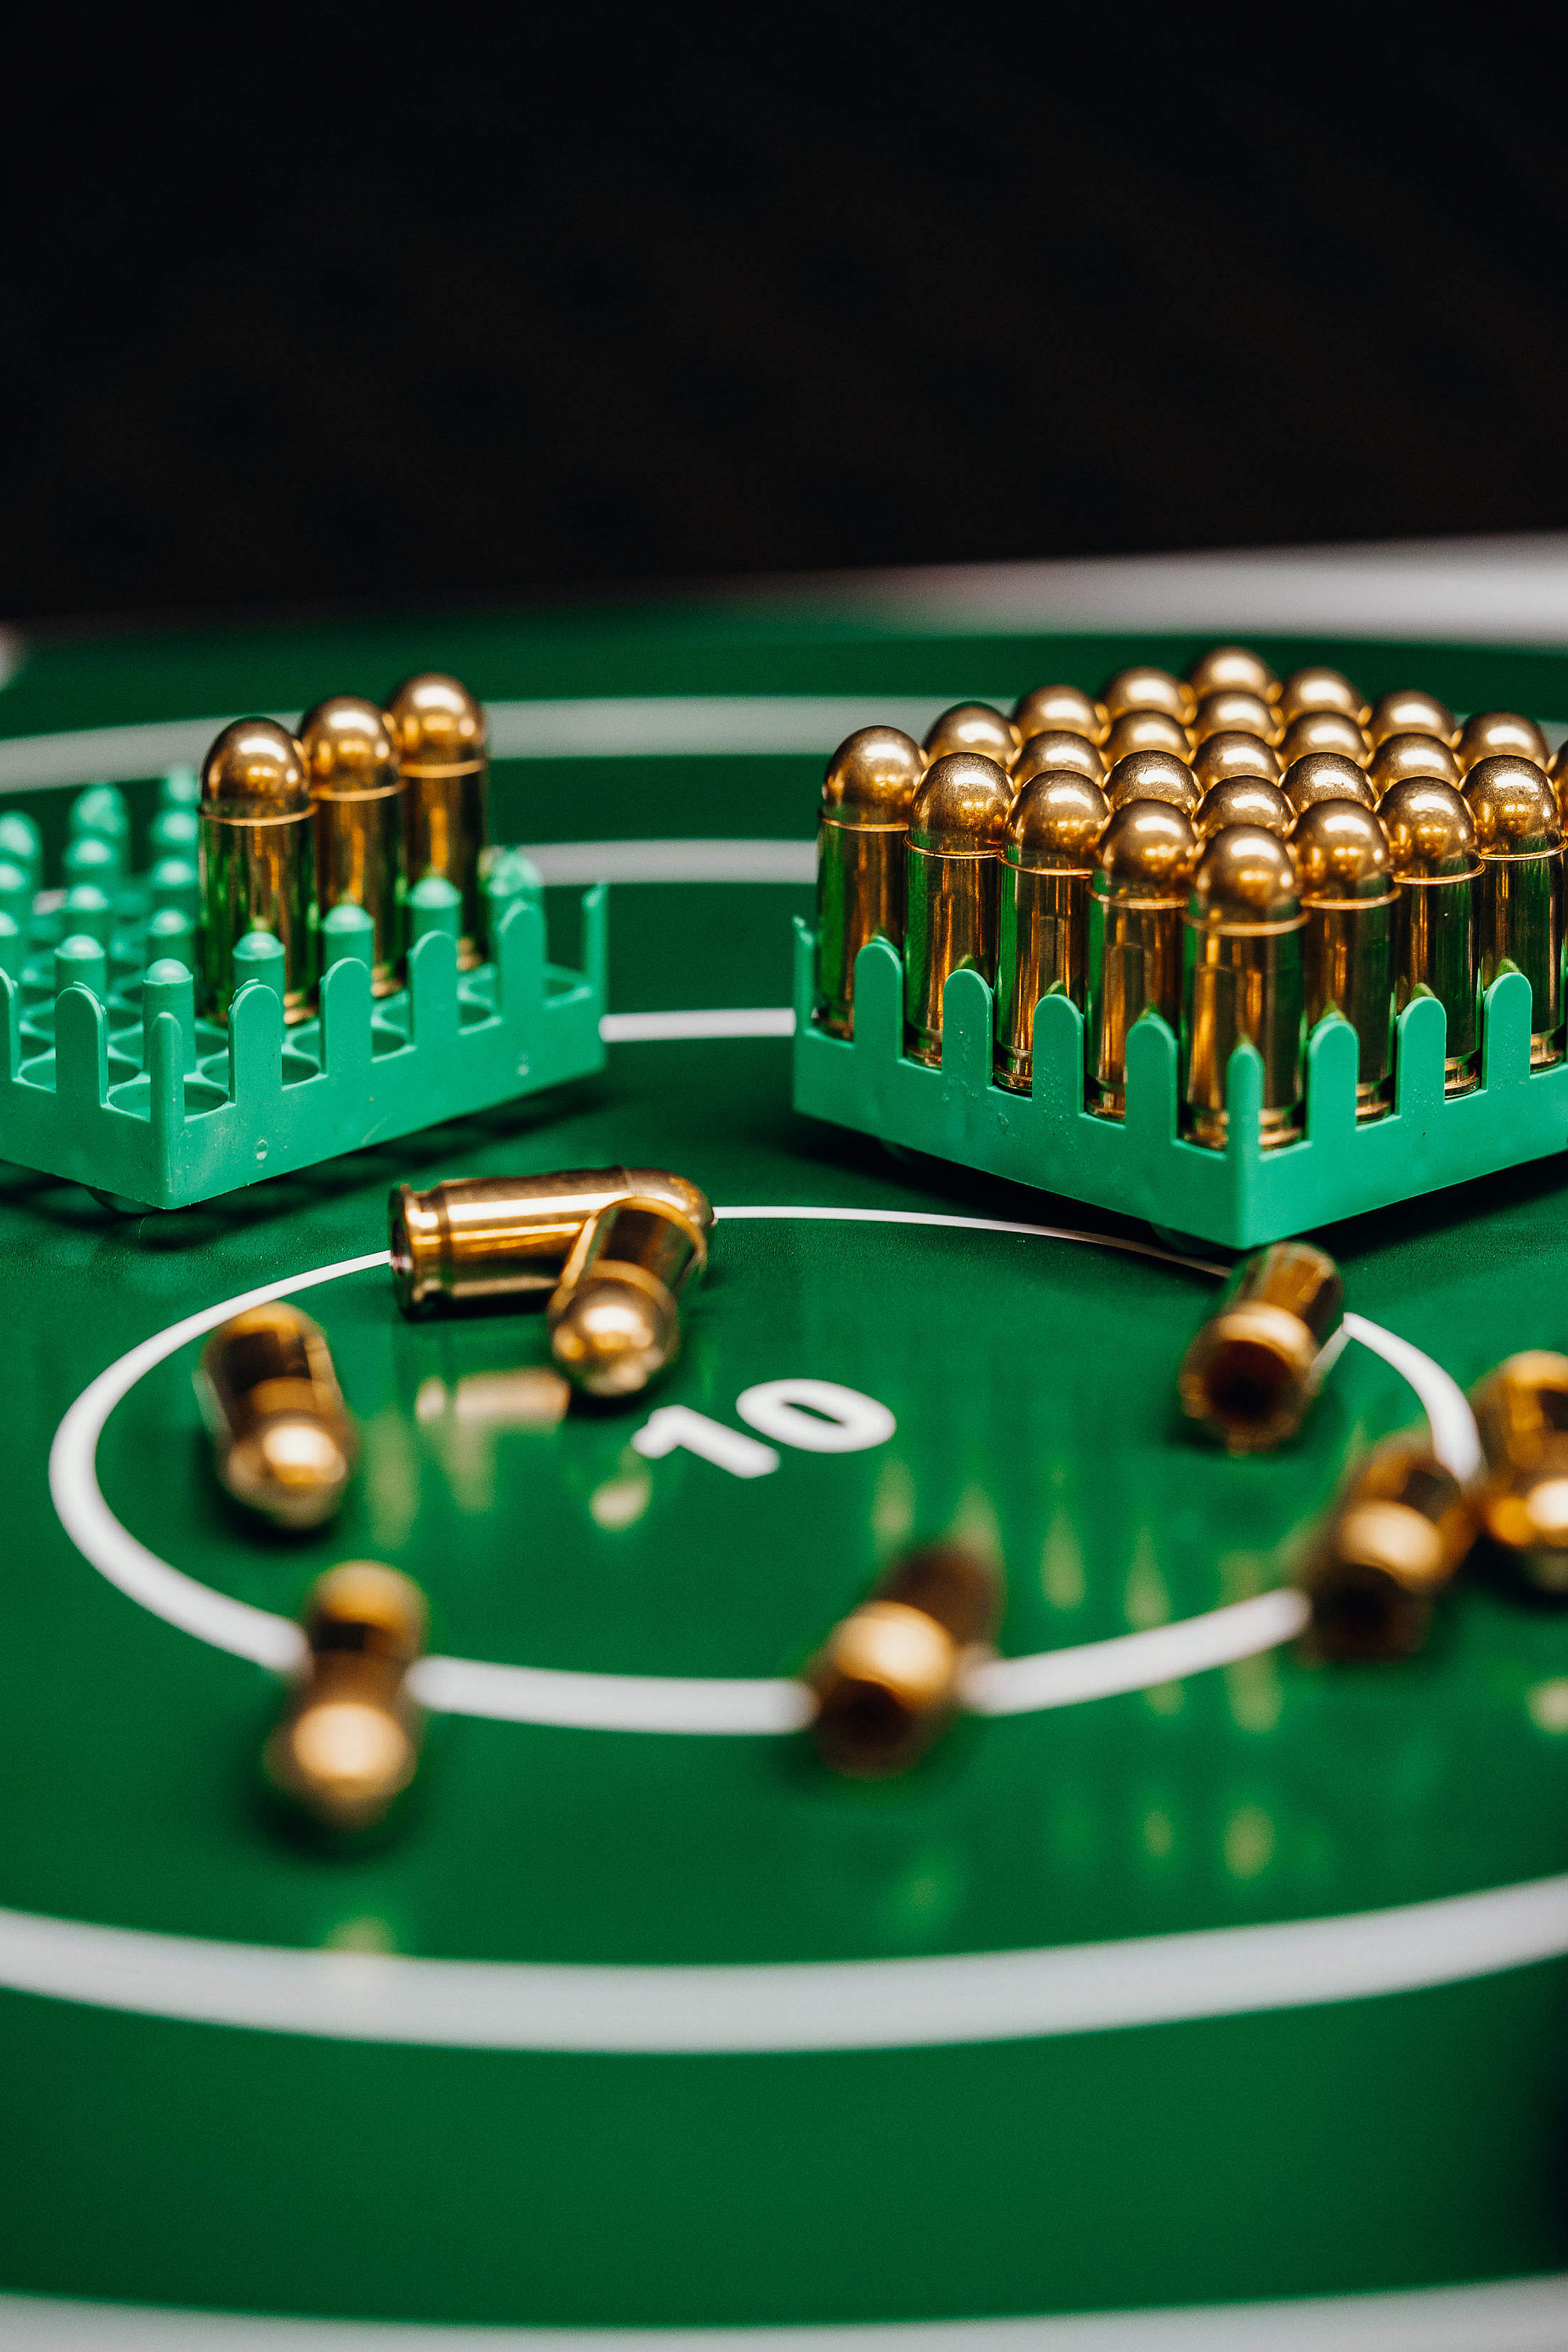 Target with Gold Bullets Free Stock Photo